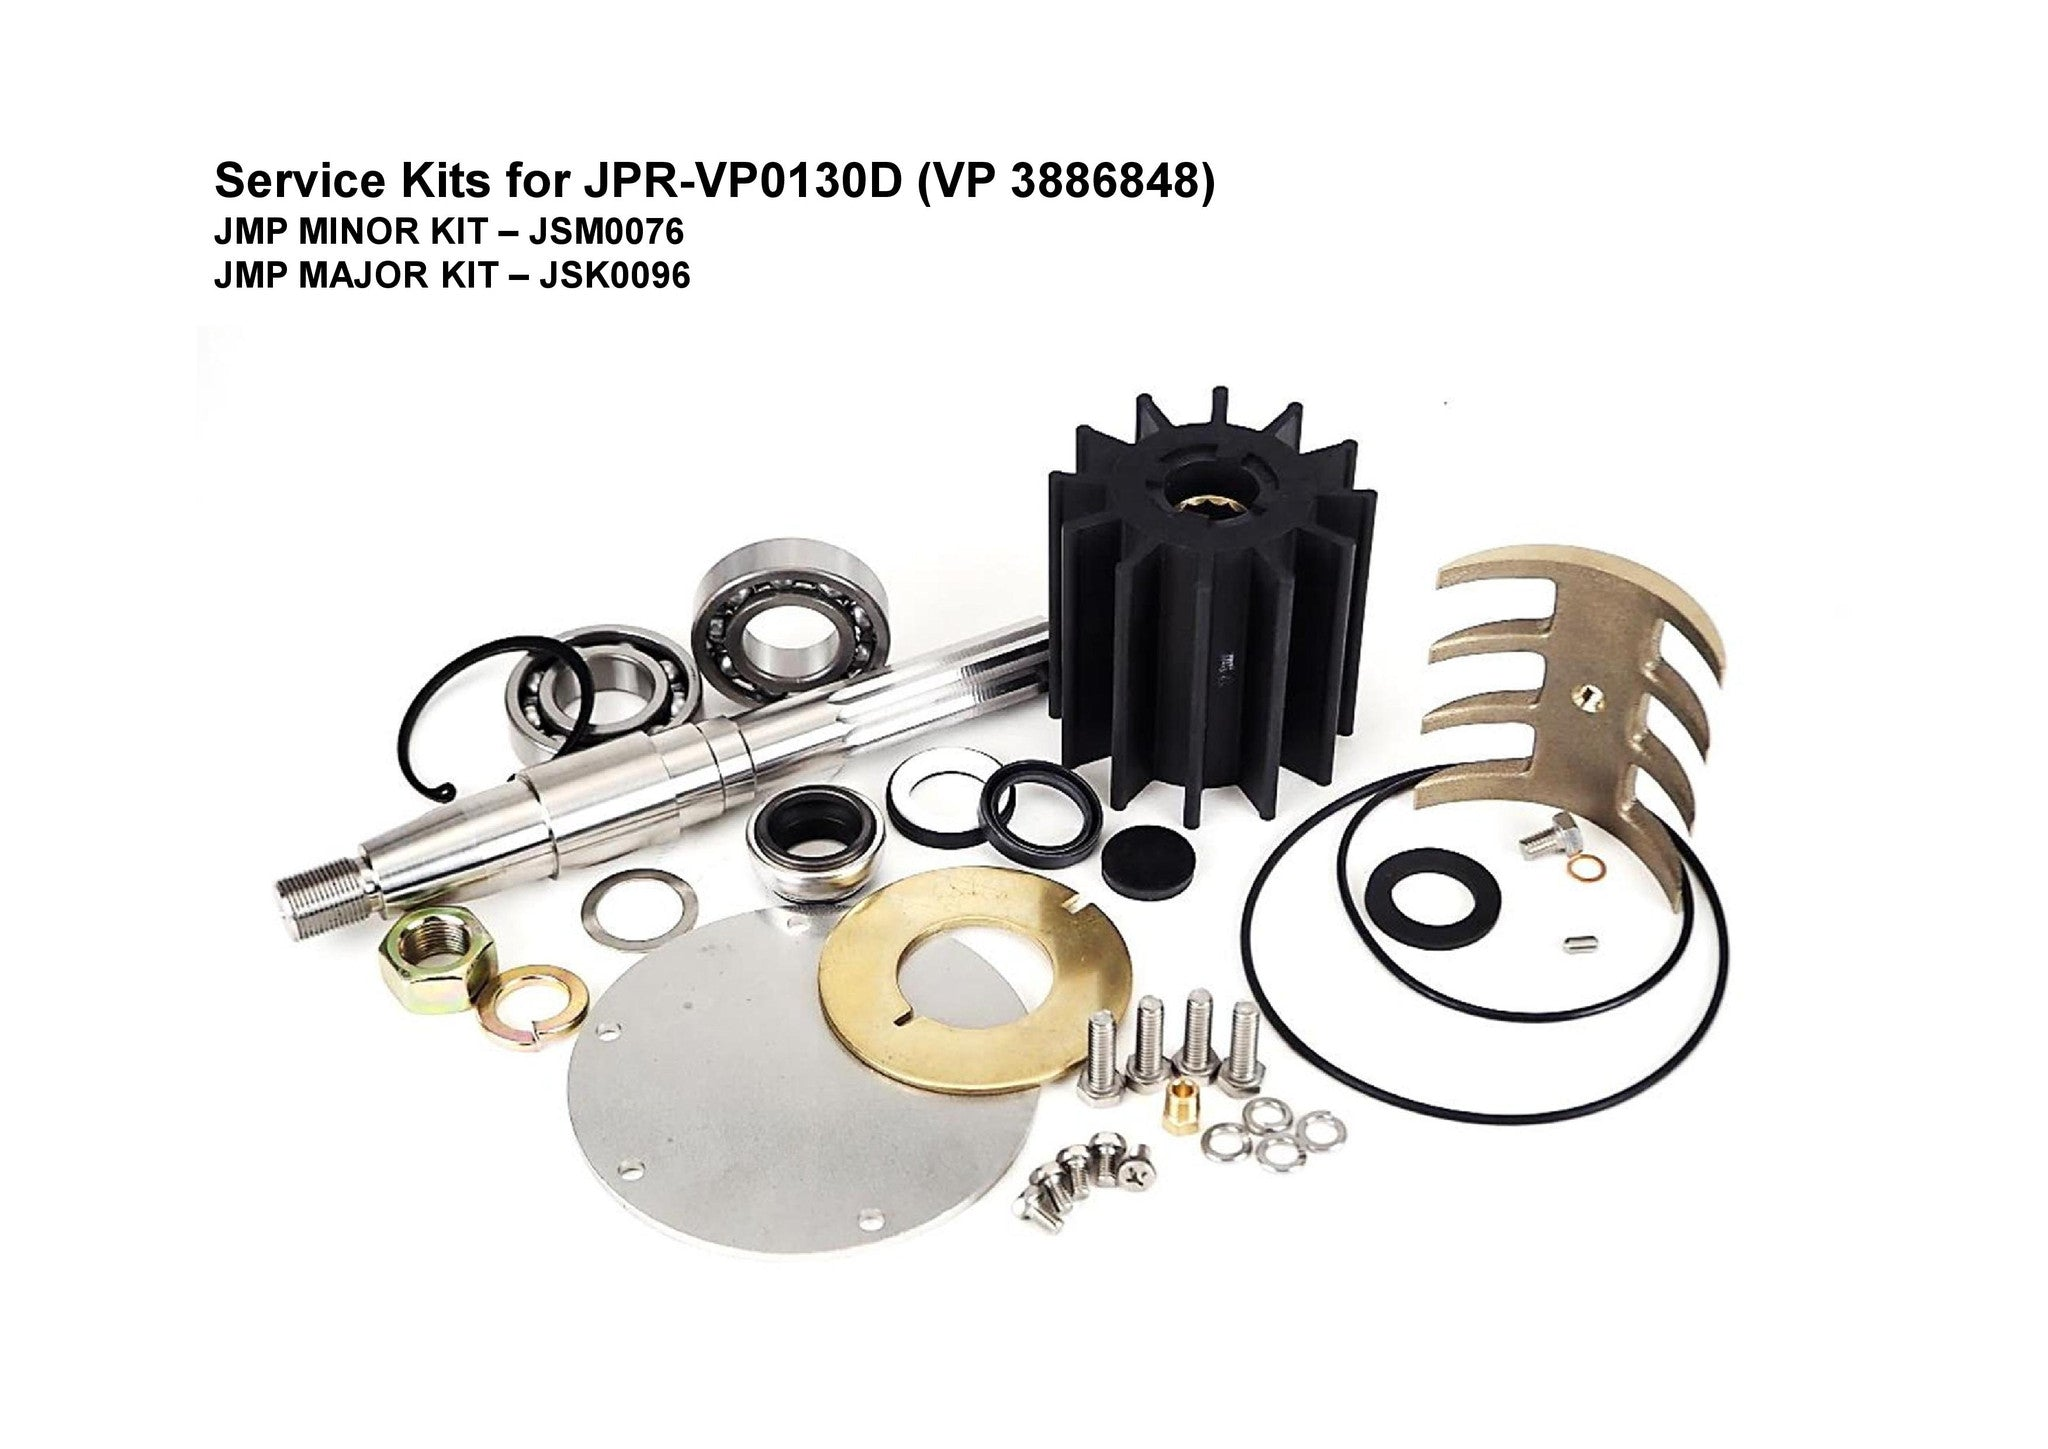 JMP-JSK0096 MAJOR KIT FOR JMP PUMP JPR-VP0130D-3886848 (Fits Volvo Penta Engines: D13B/C)